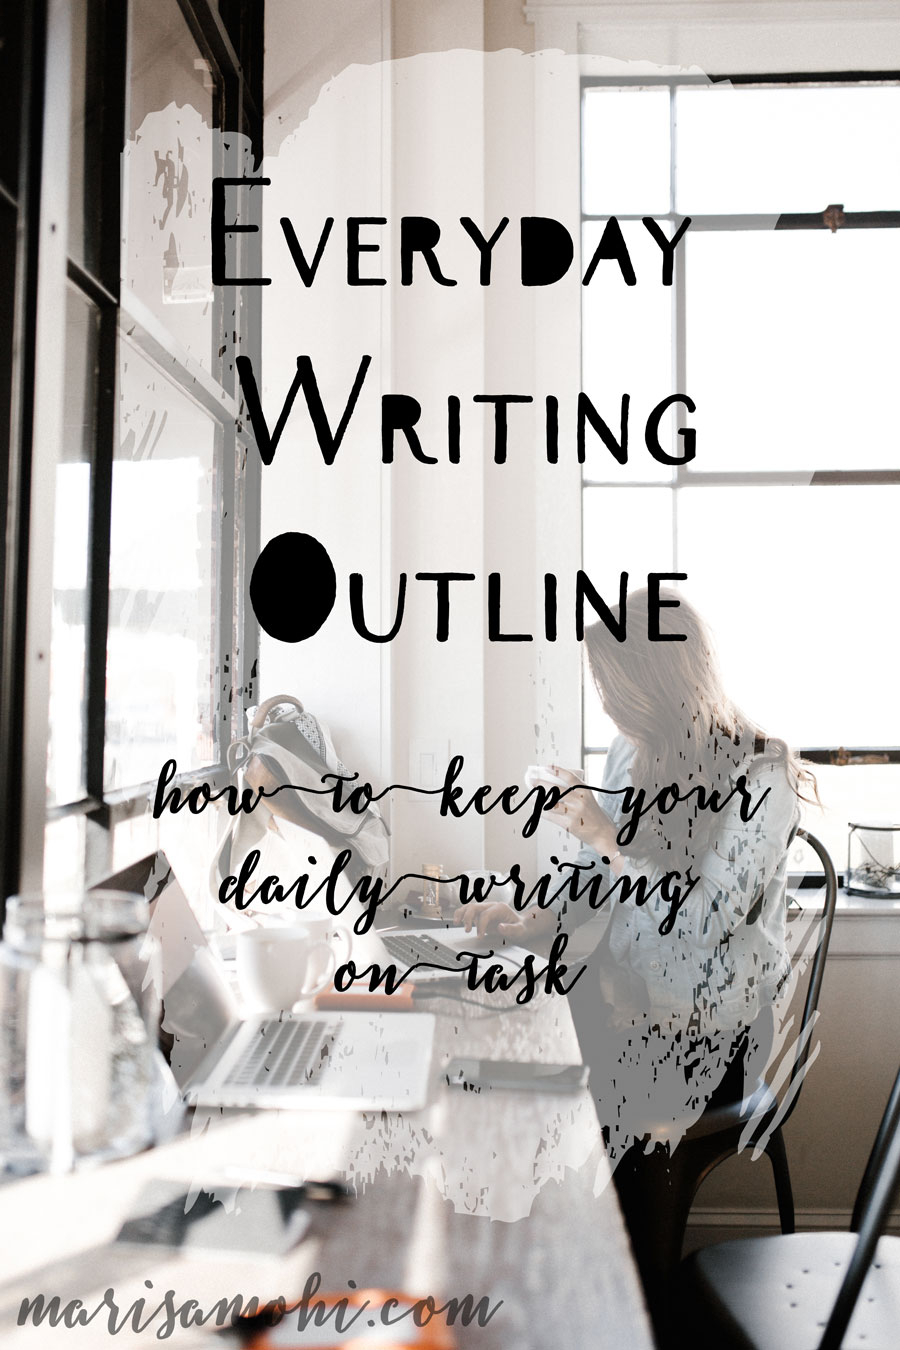 Everyday Writing Outline: How to Keep Daily Writing on Task